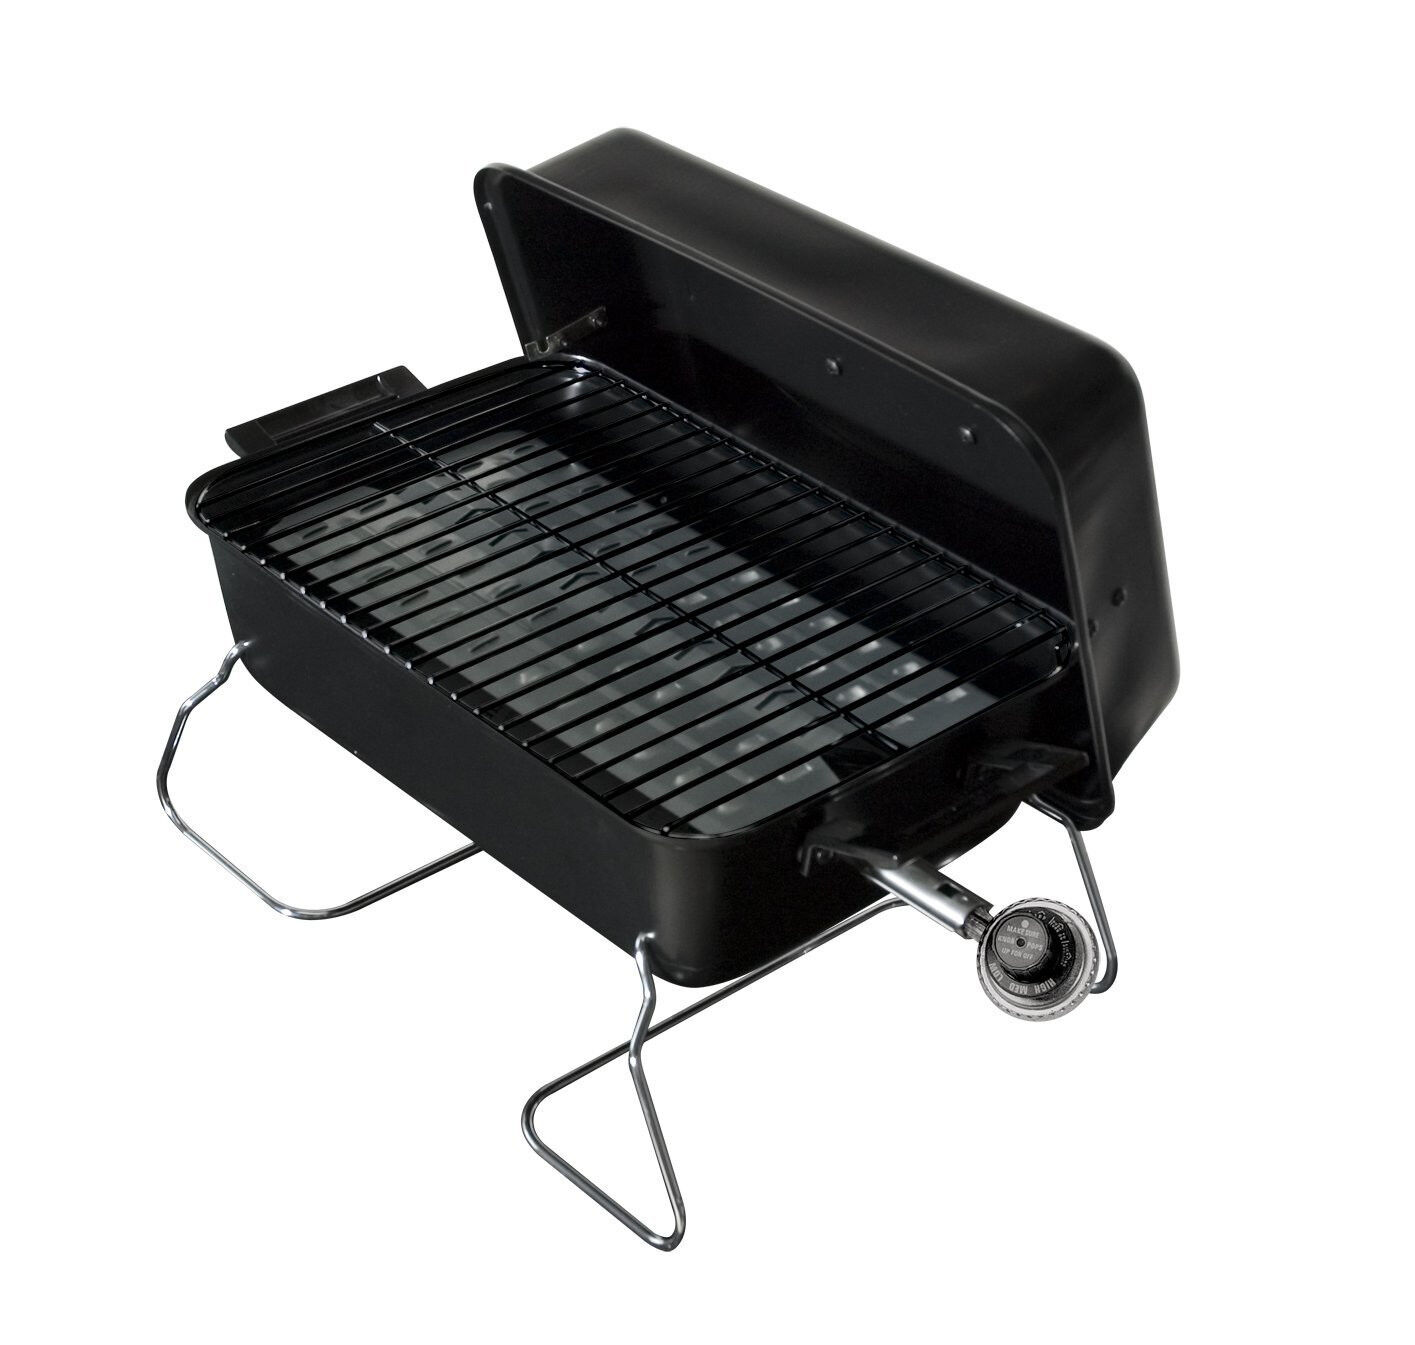 new tabletop gas grill portable propane barbecue bbq smokers outdoor camping ebay. Black Bedroom Furniture Sets. Home Design Ideas